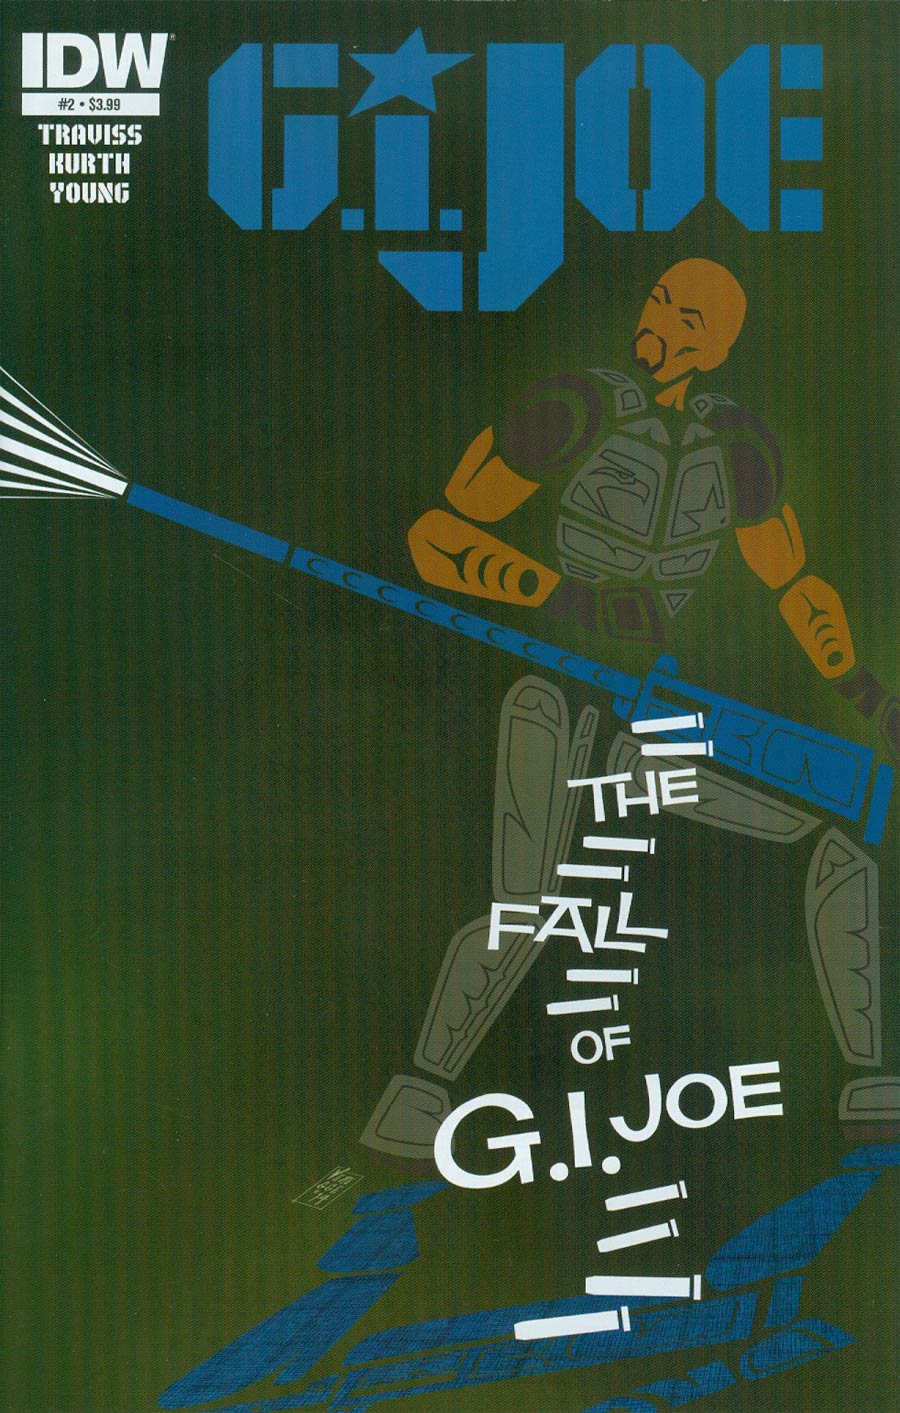 GI Joe Vol 7 #2 Cover A Regular Jeffrey Veregge Cover